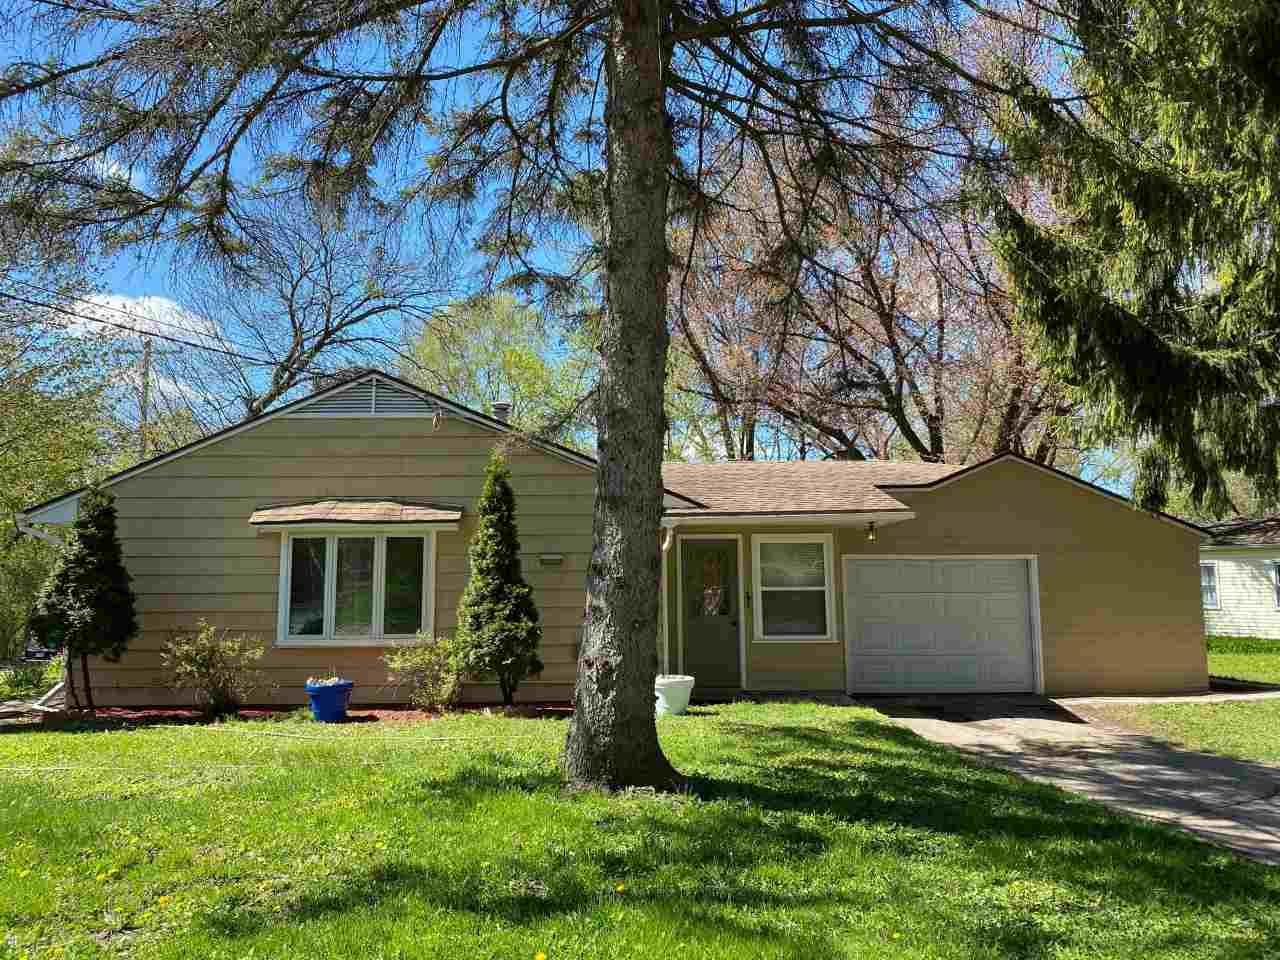 2002 Seminole Hwy HIGHWAY, MADISON, WI 53711